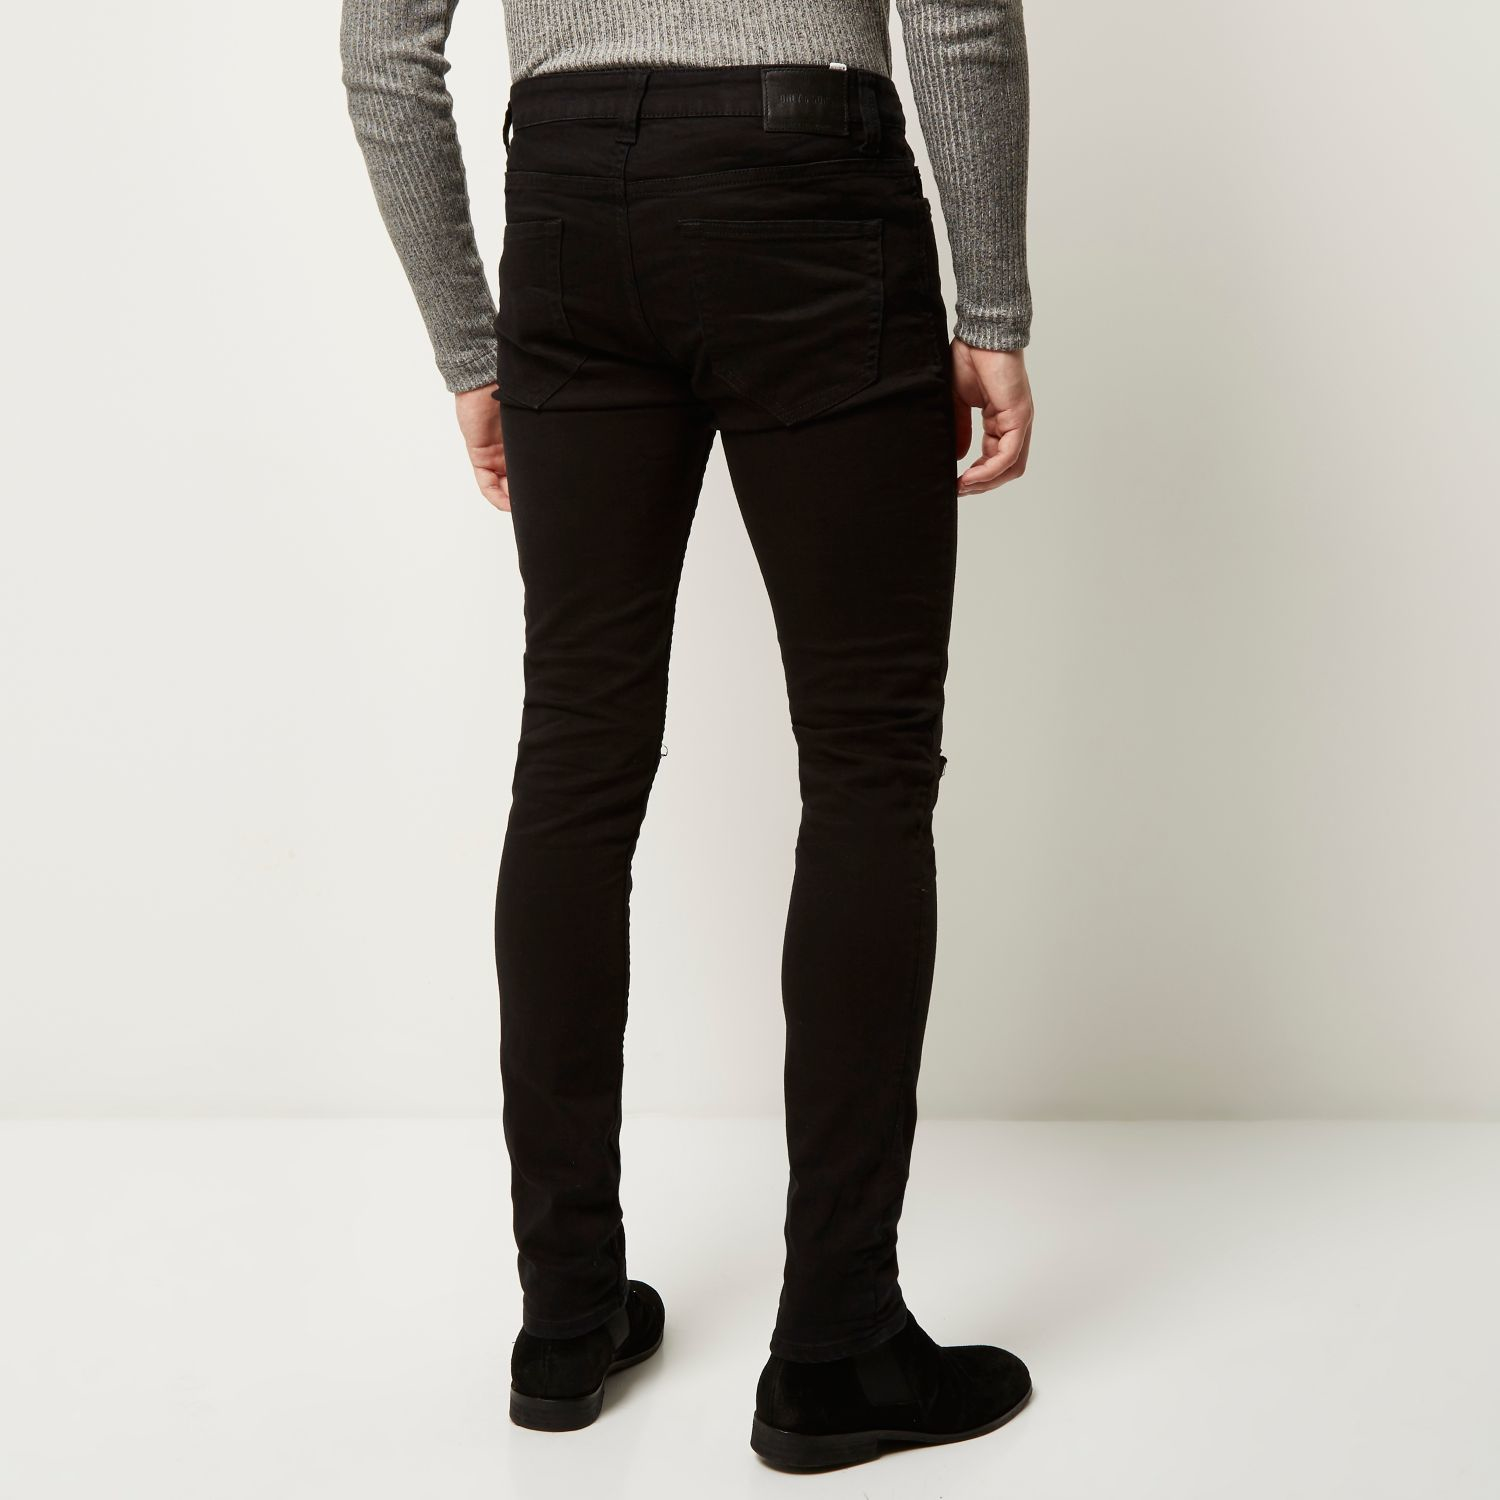 f386b4e686e River Island Black Only & Sons Ripped Knee Skinny Jeans in Black for ...